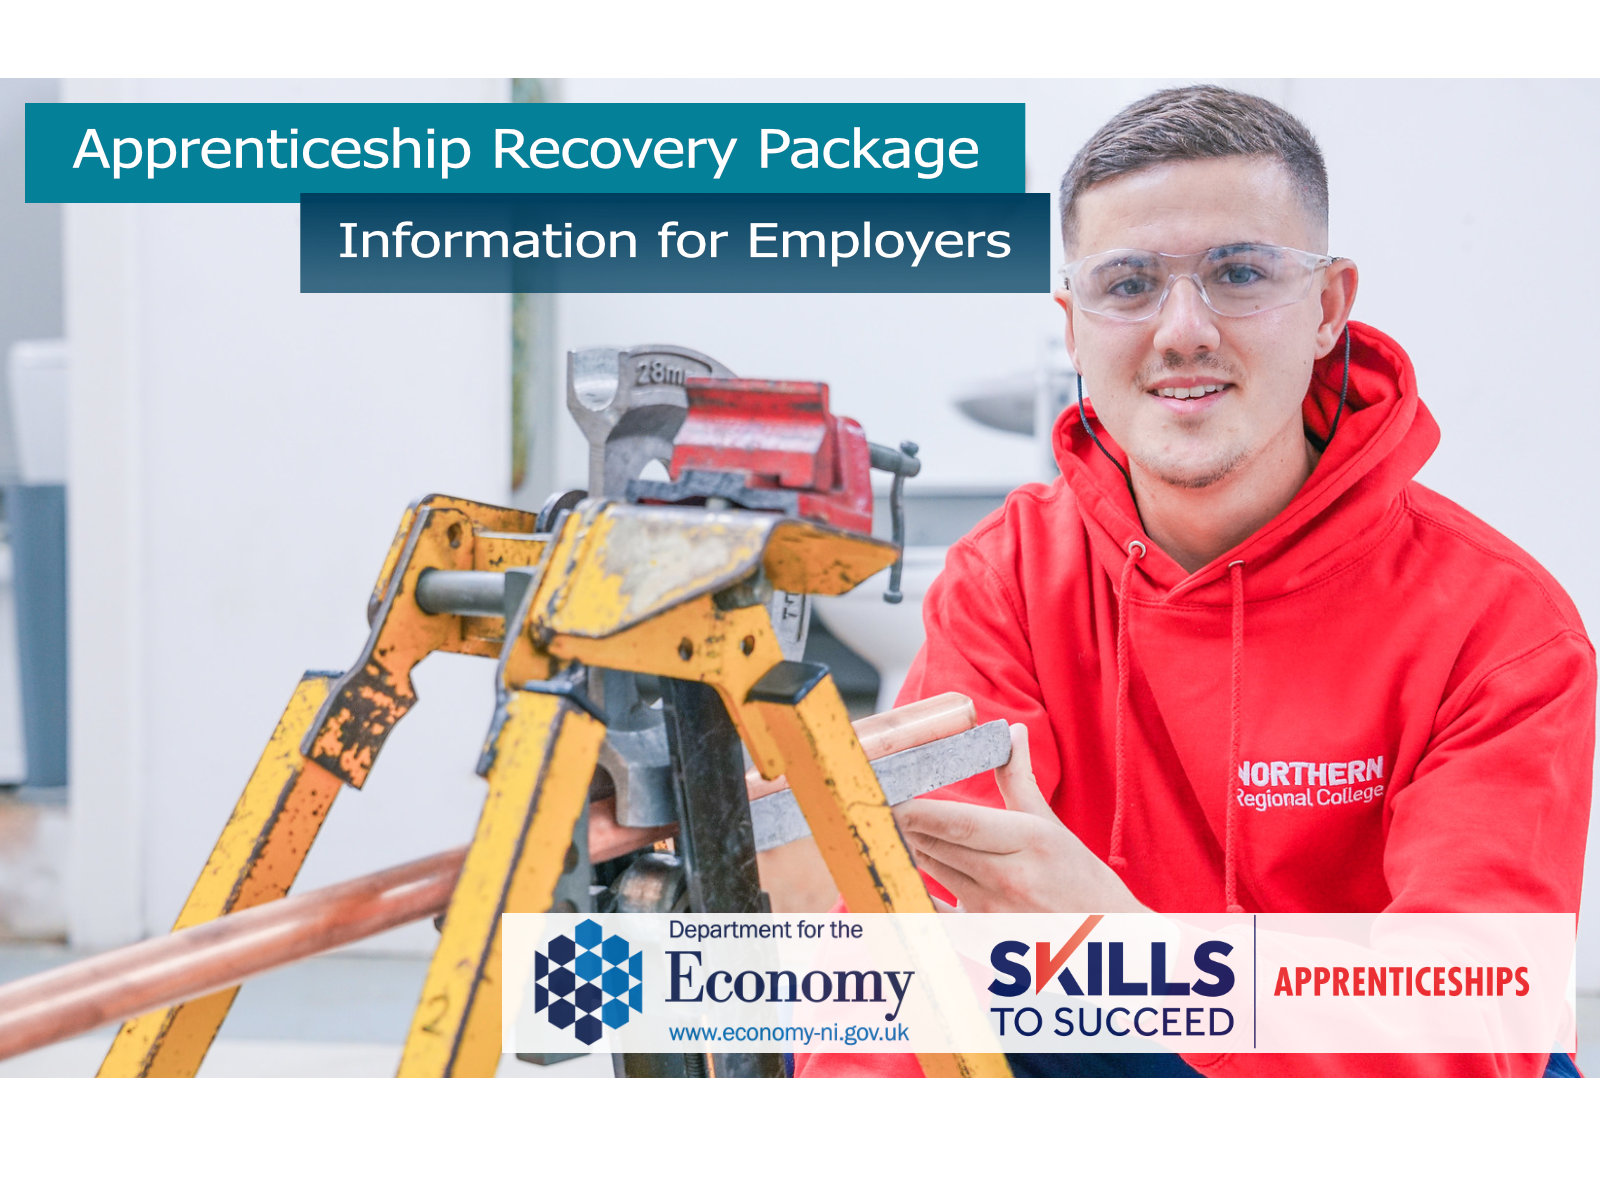 Apprenticeship Recovery Package - Information for Employers